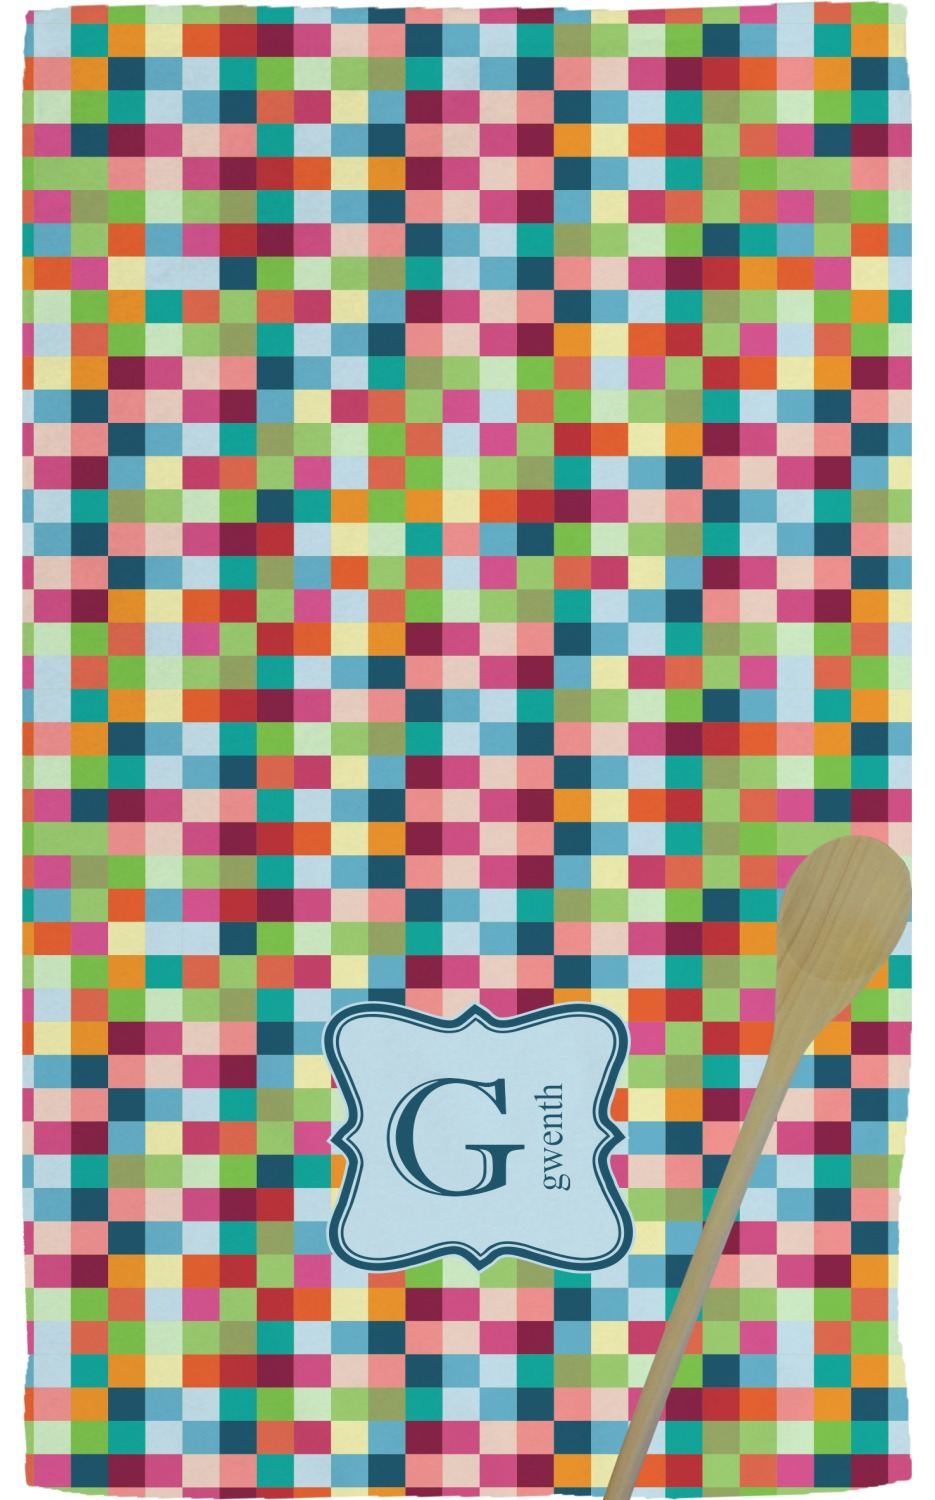 Retro Pixel Squares Kitchen Towel - Full Print (Personalized)